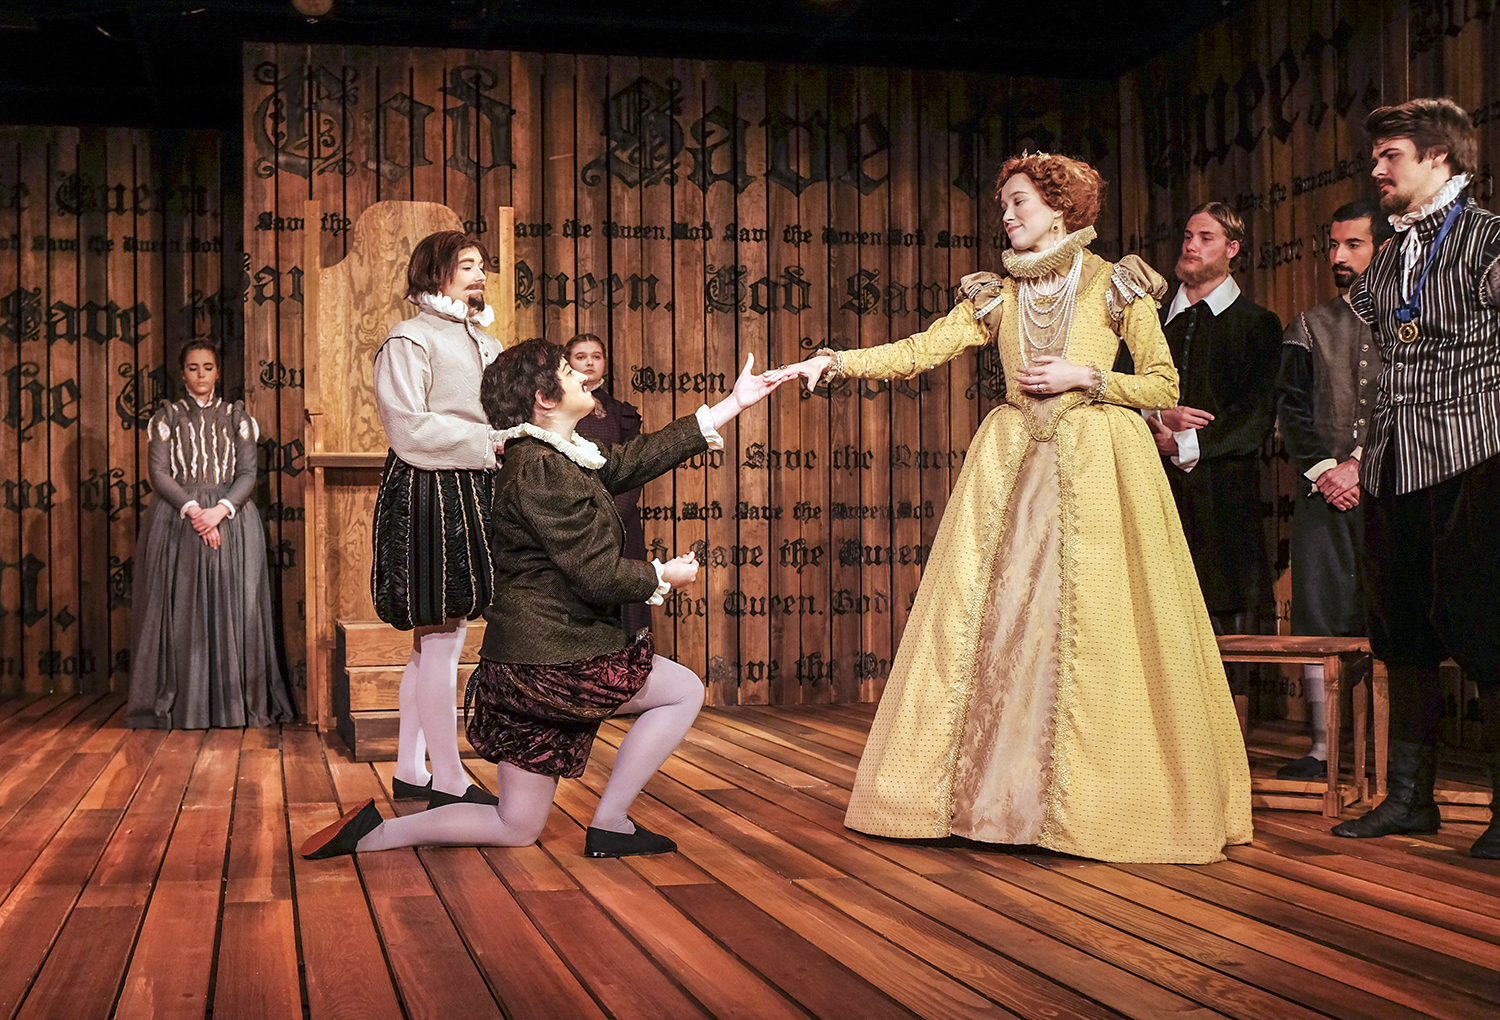 """The Department of Theatre and Dance put on multiple performances of """"Mary Stuart,"""" a play that brings to life an imagined meeting between Mary Queen of Scots and Queen Elizabeth I."""